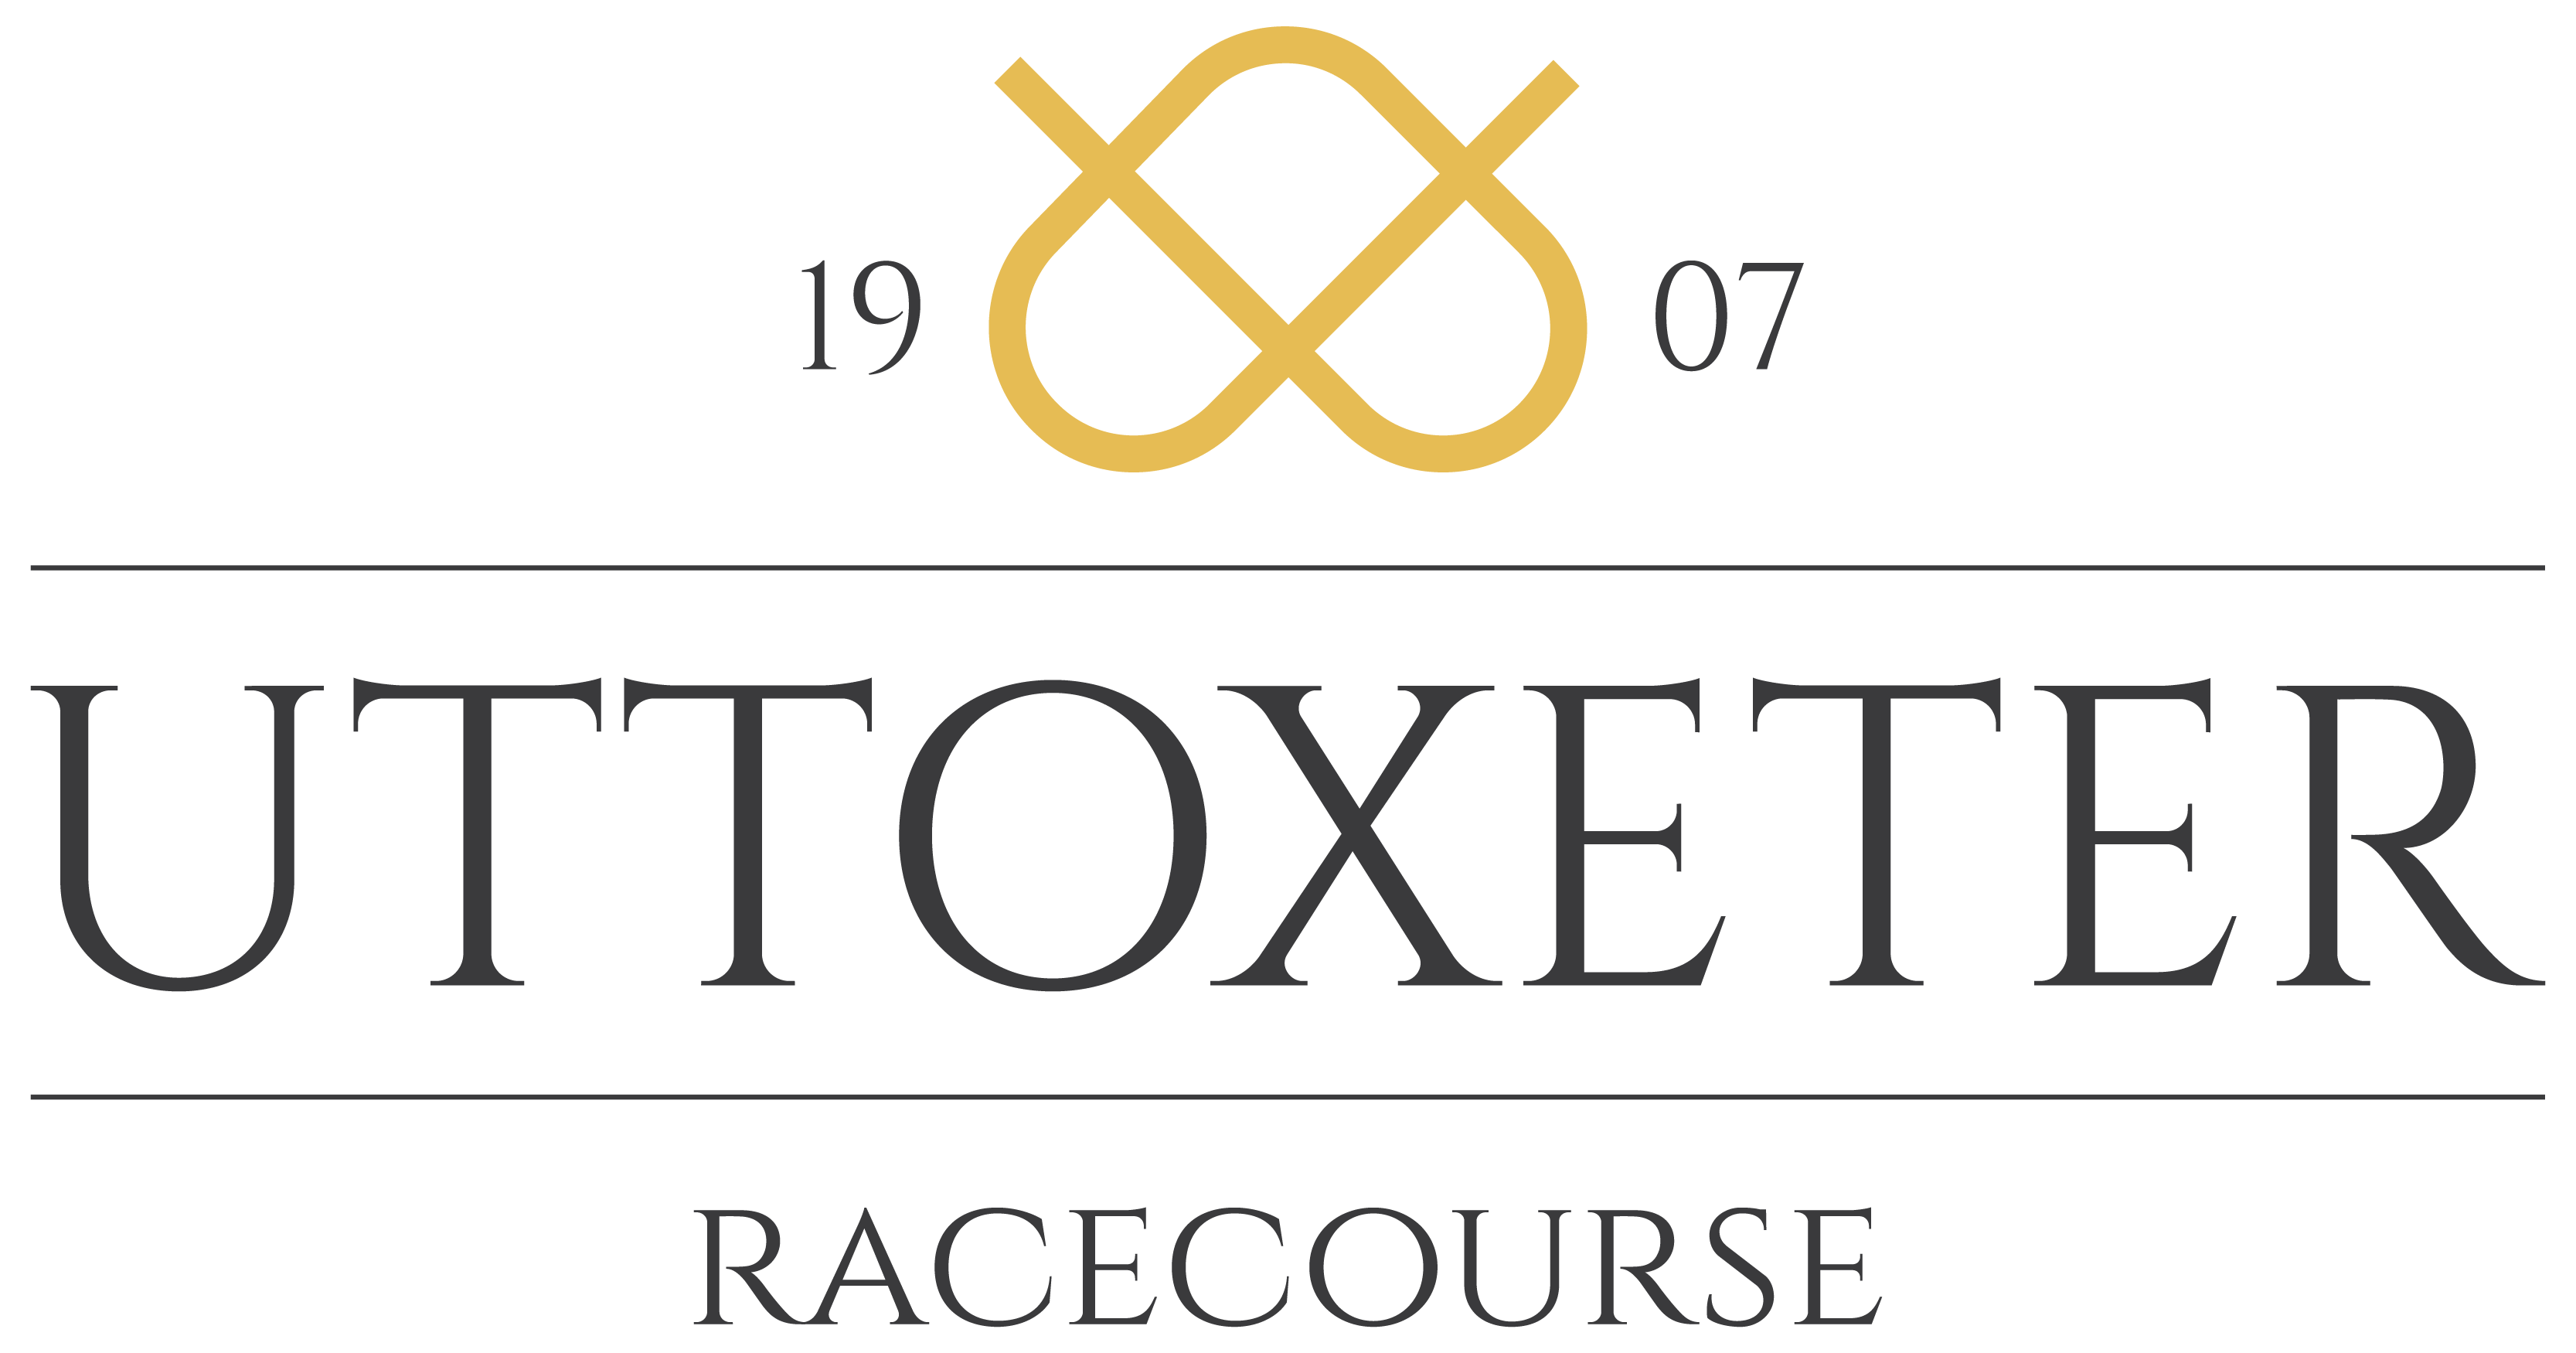 Uttoxeter Racecourse Hospitality